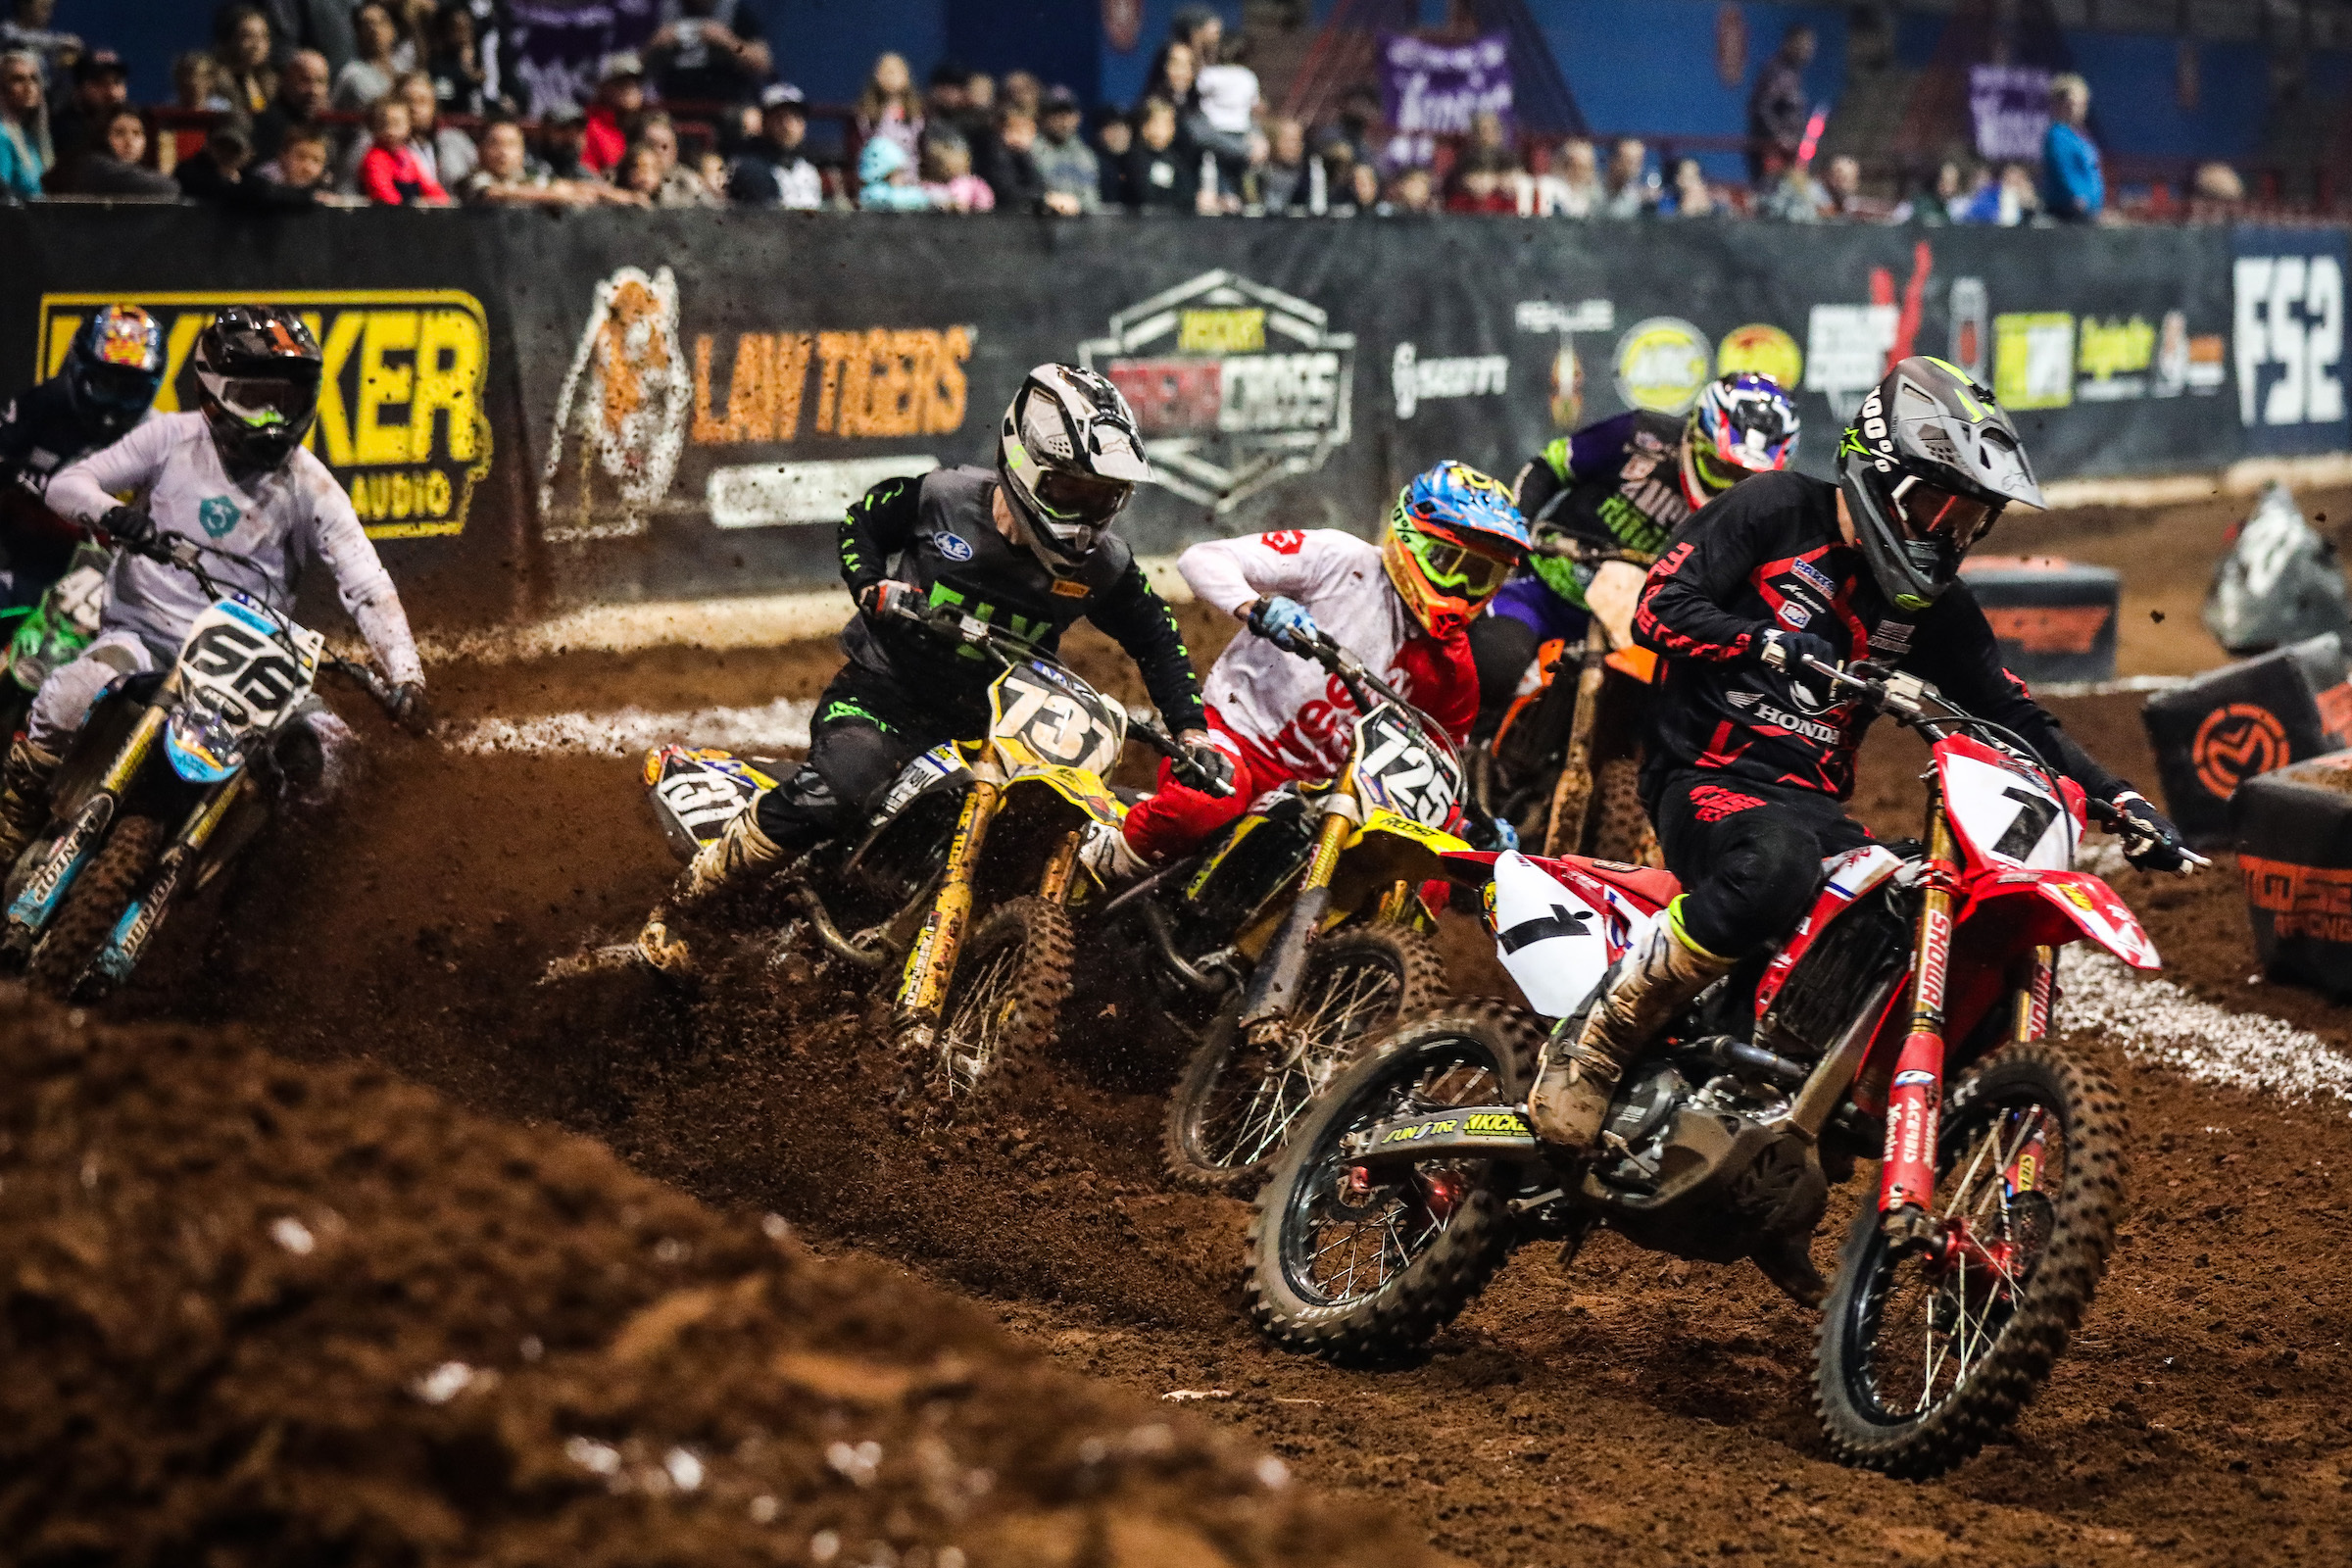 The 450 Pro Main class in Round 5 was a tight battle. (Photo- Jack Jaxson)